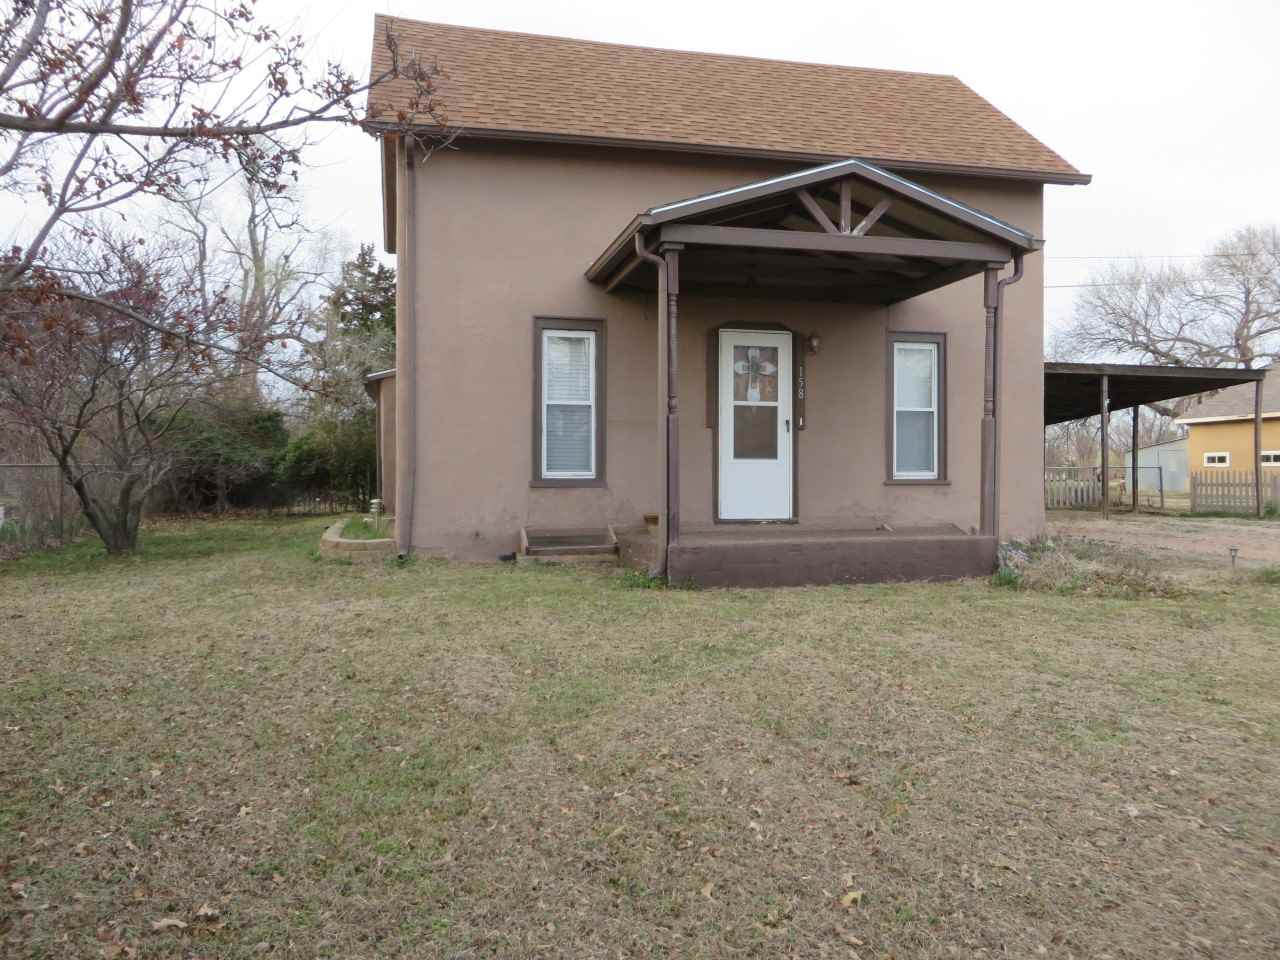 Traditional 3 Bedrooms, 1 Bathroom, large Carport and fenced yard. Home is located in Garden Plain j